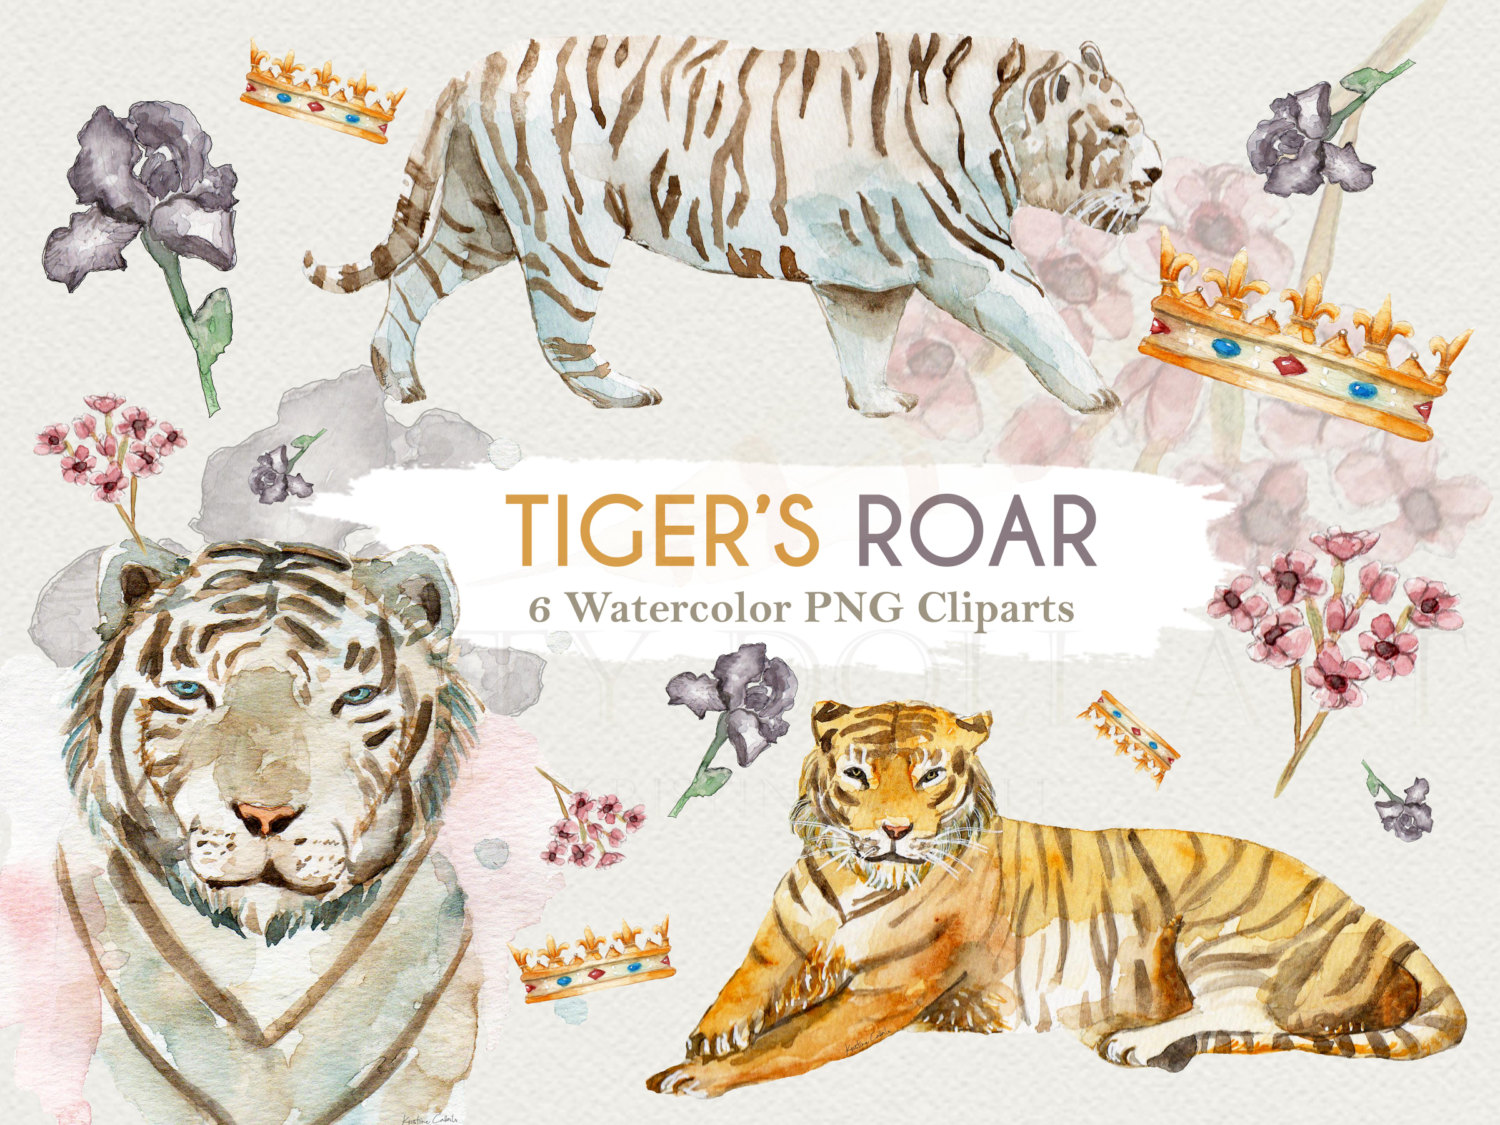 Tiiger clipart zoo animal #12